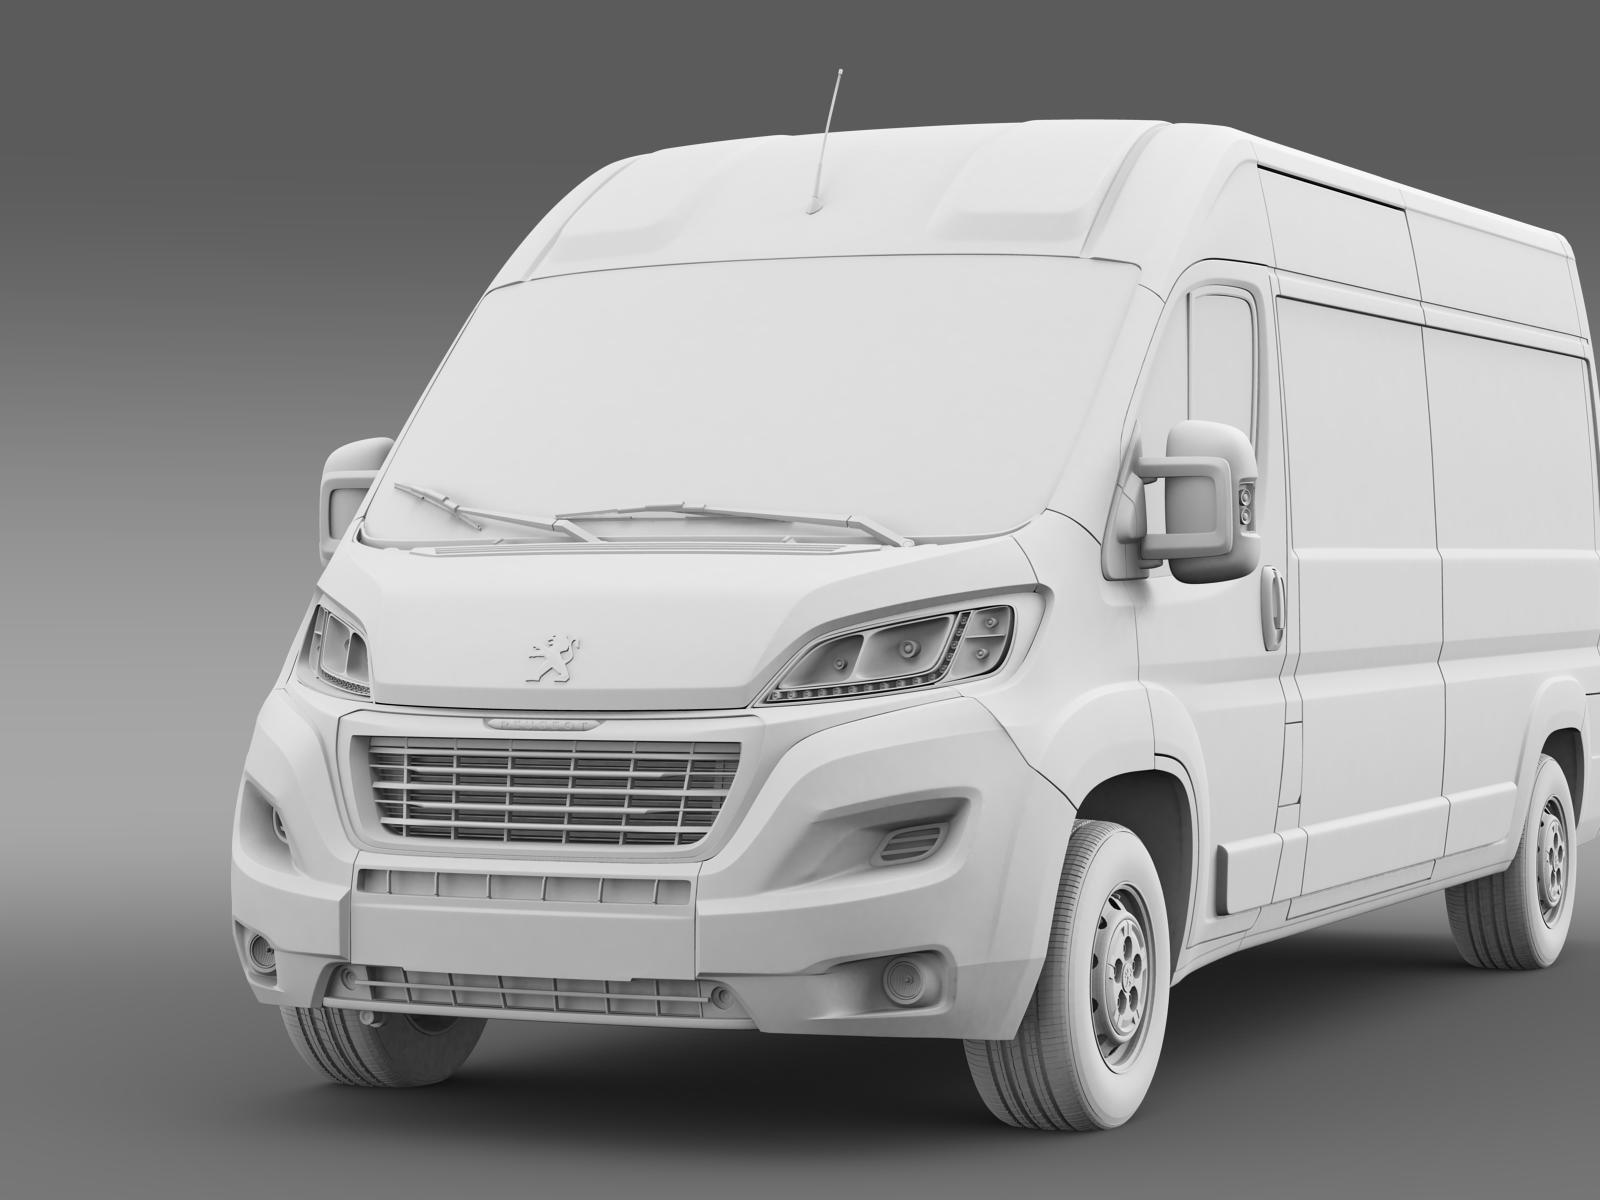 peugeot boxer van l3h2 2014 by creator 3d 3docean. Black Bedroom Furniture Sets. Home Design Ideas